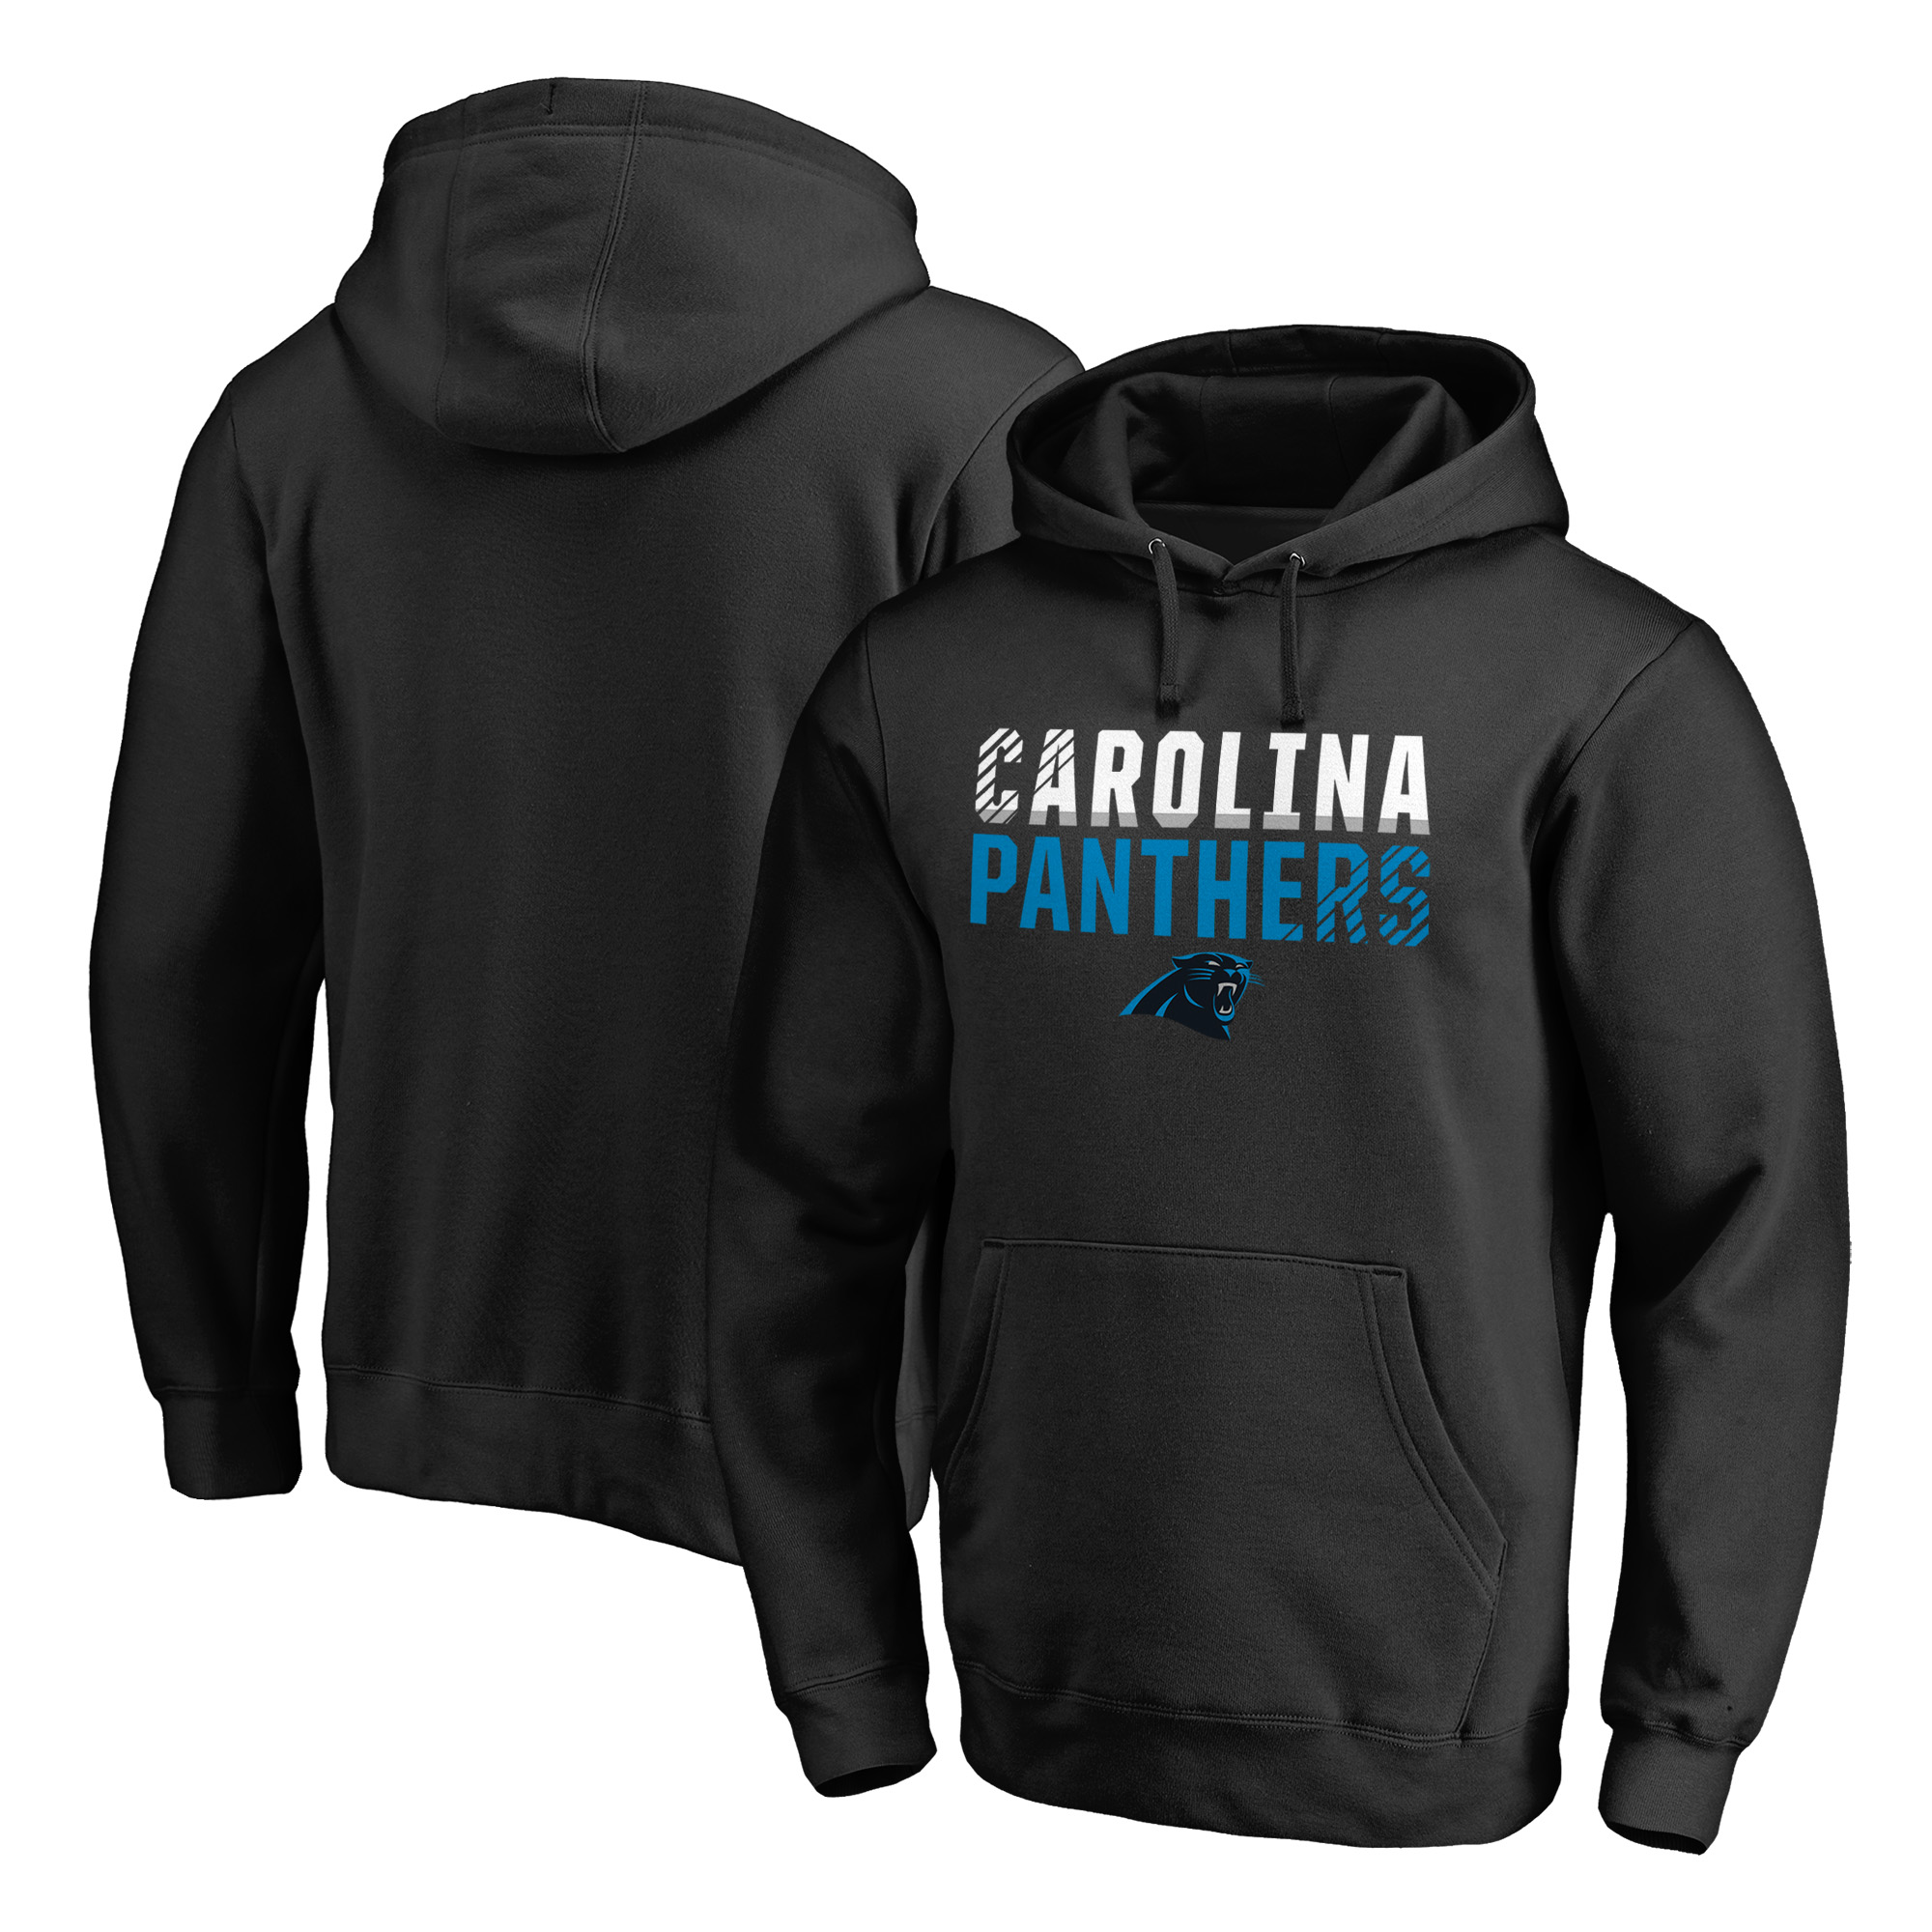 Carolina Panthers NFL Pro Line by Fanatics Branded Iconic Collection Fade Out Pullover Hoodie - Black